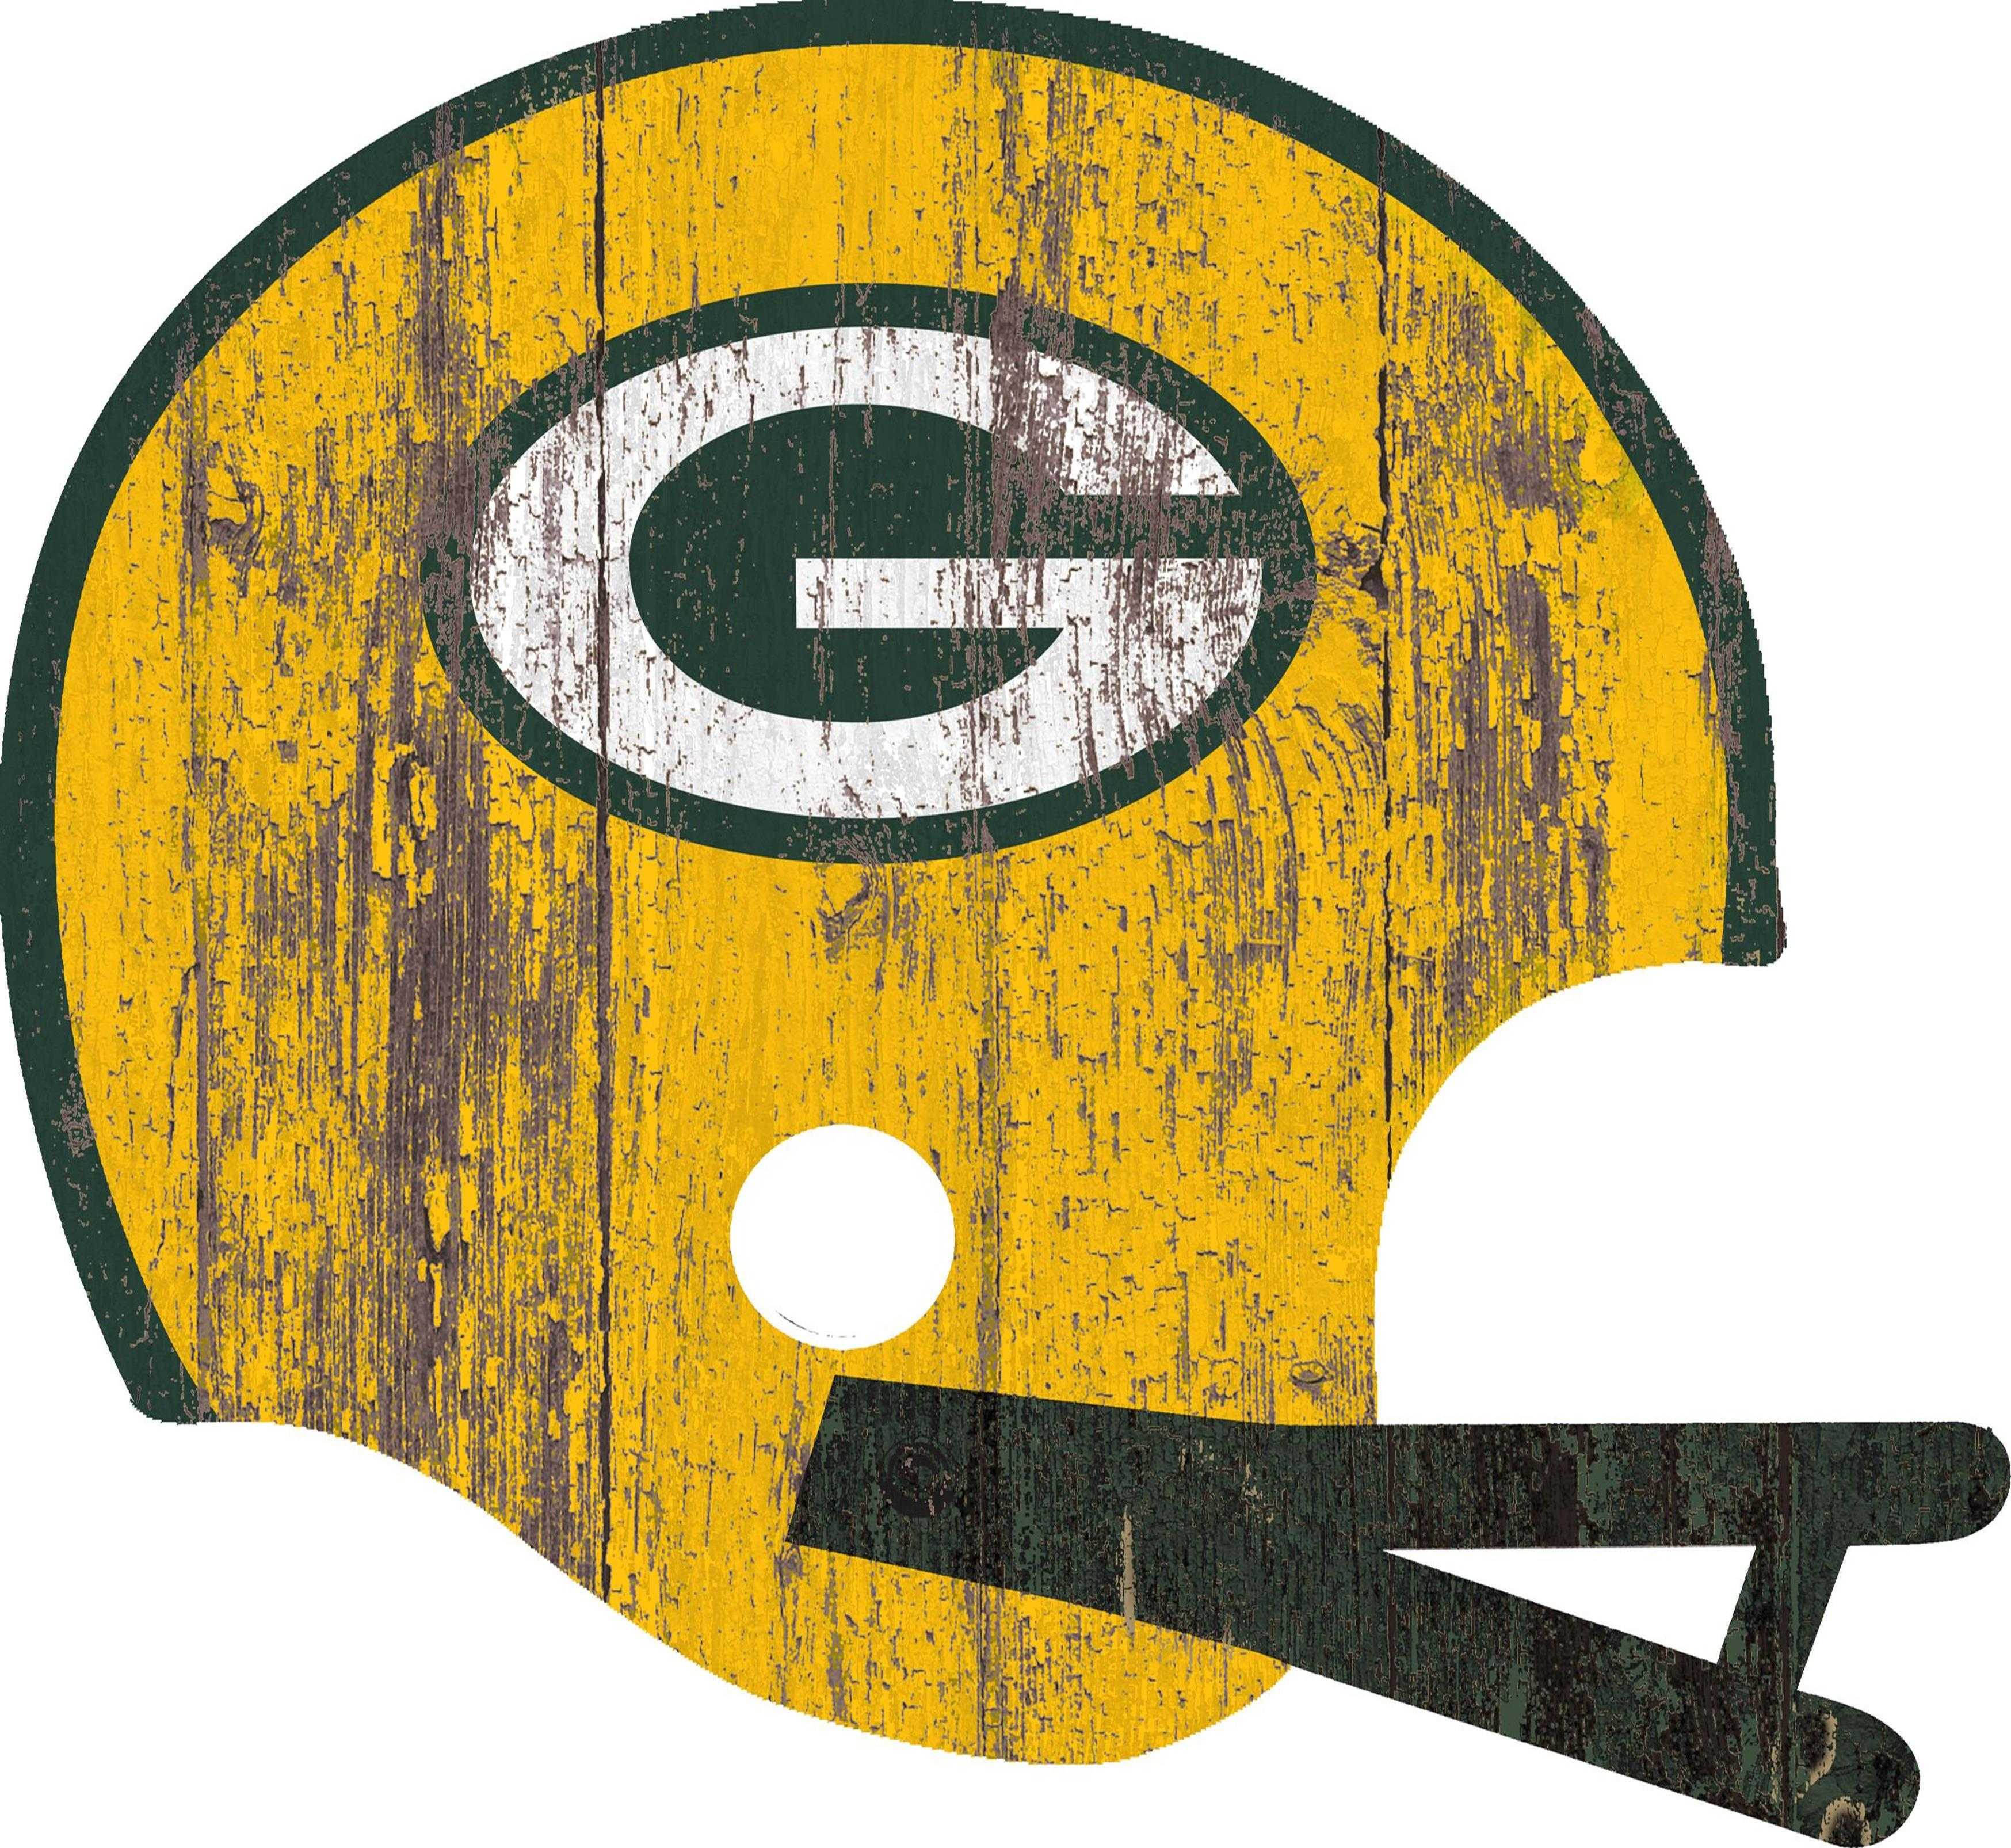 Green Bay Packers Sign Large Wood Helmet Green Bay Packers Signs Green Bay Packers Fans Green Bay Packers